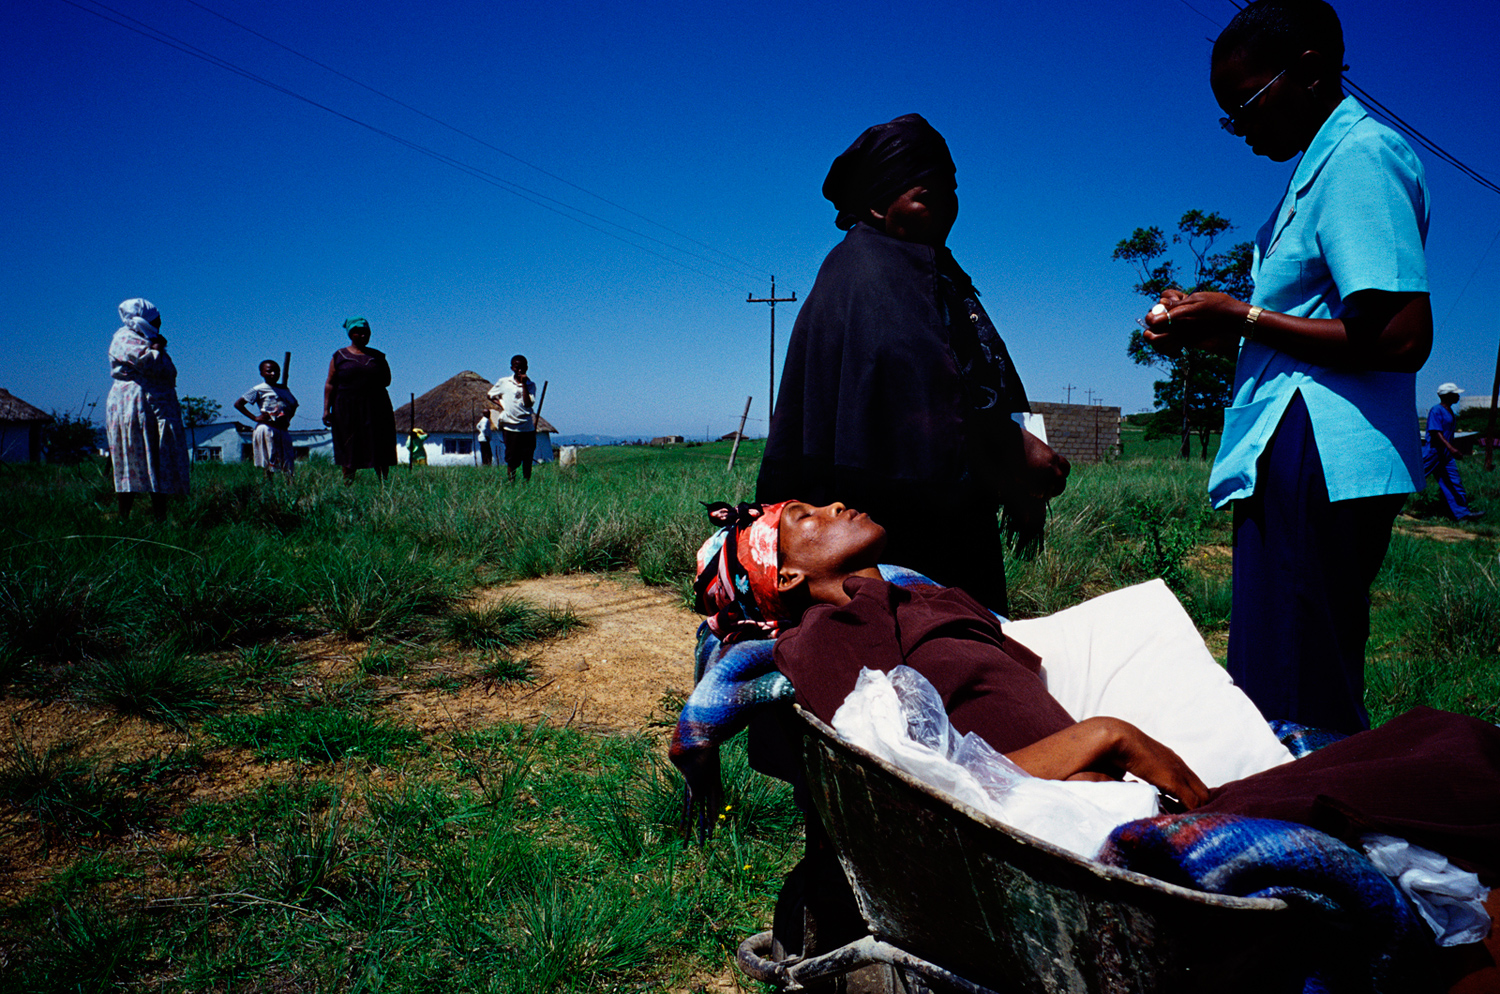 Busisiwe Mfeka, 28, is dying of Aids. She rests in a wheelbarrow, as a hospice worker drops off her and her mother in Izingolweni, a rural village in Southern Natal, South Africa, November 2005. South Africa has one of the highest HIV/Aids infection rates worldwide and also the largest ARV drugs programme.